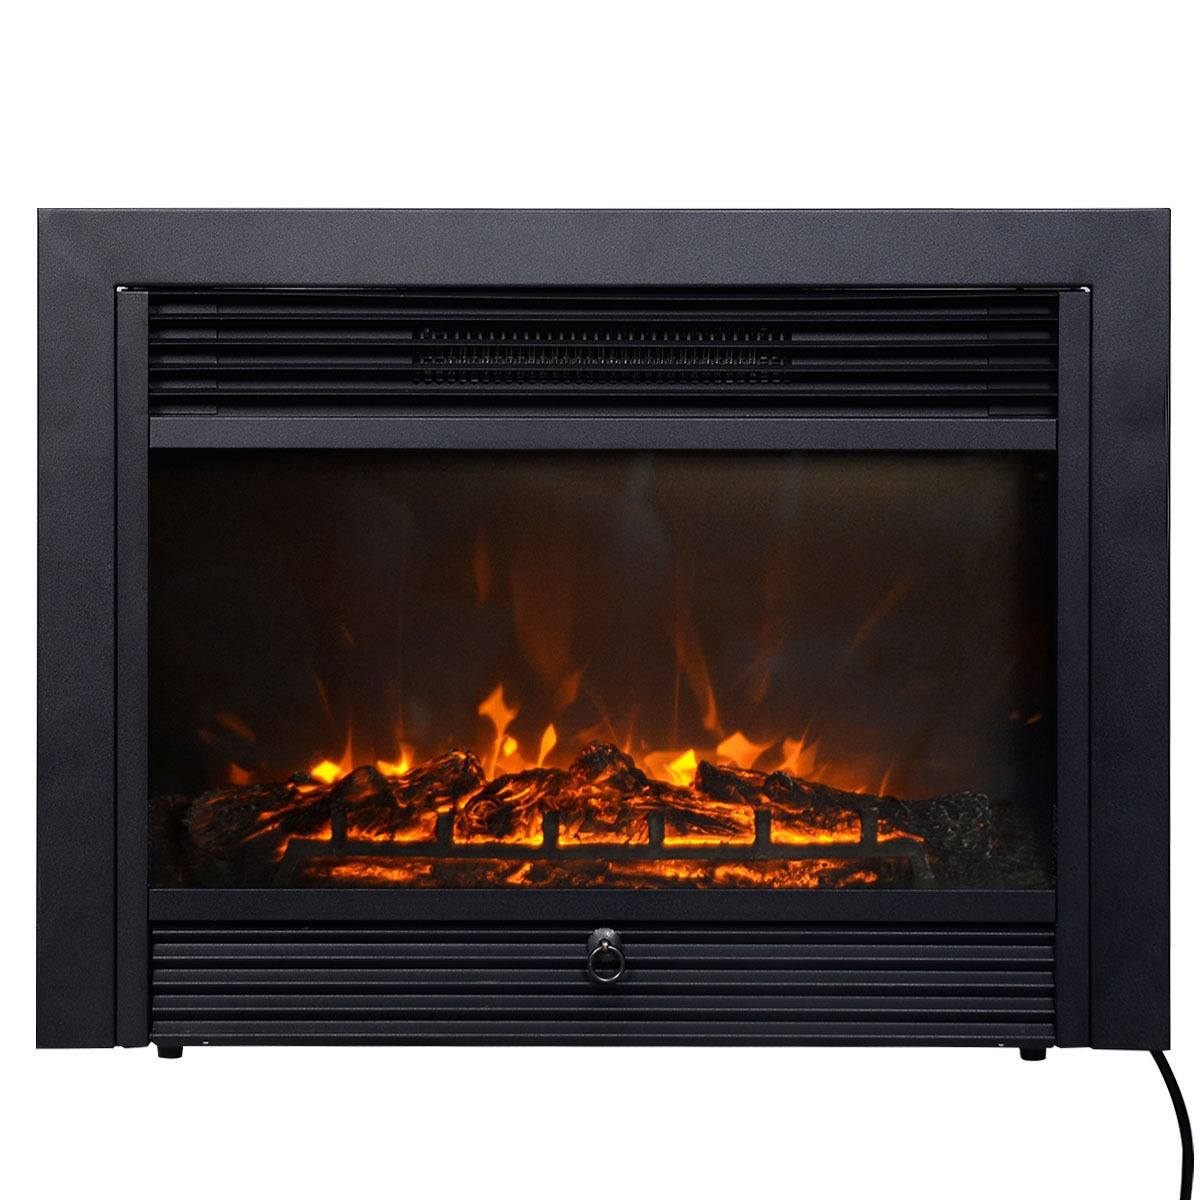 """Best ideas about Electric Fireplace Insert With Heater . Save or Pin Electric Fireplace Insert 28 5"""" Embedded Heater Glass View Now."""